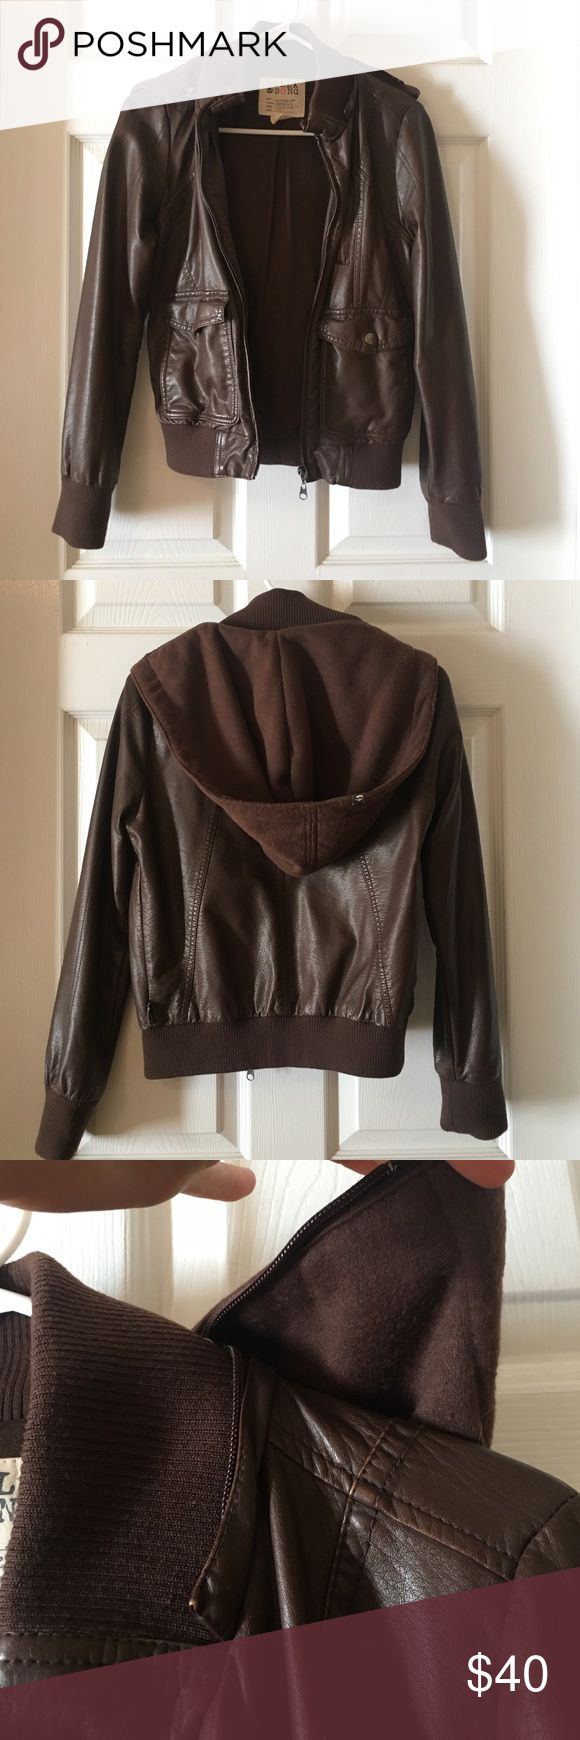 Billabong Bomber Jacket Billabong faux leather bomber jacket! In great condition with removable hoodie! Jackets & Coats